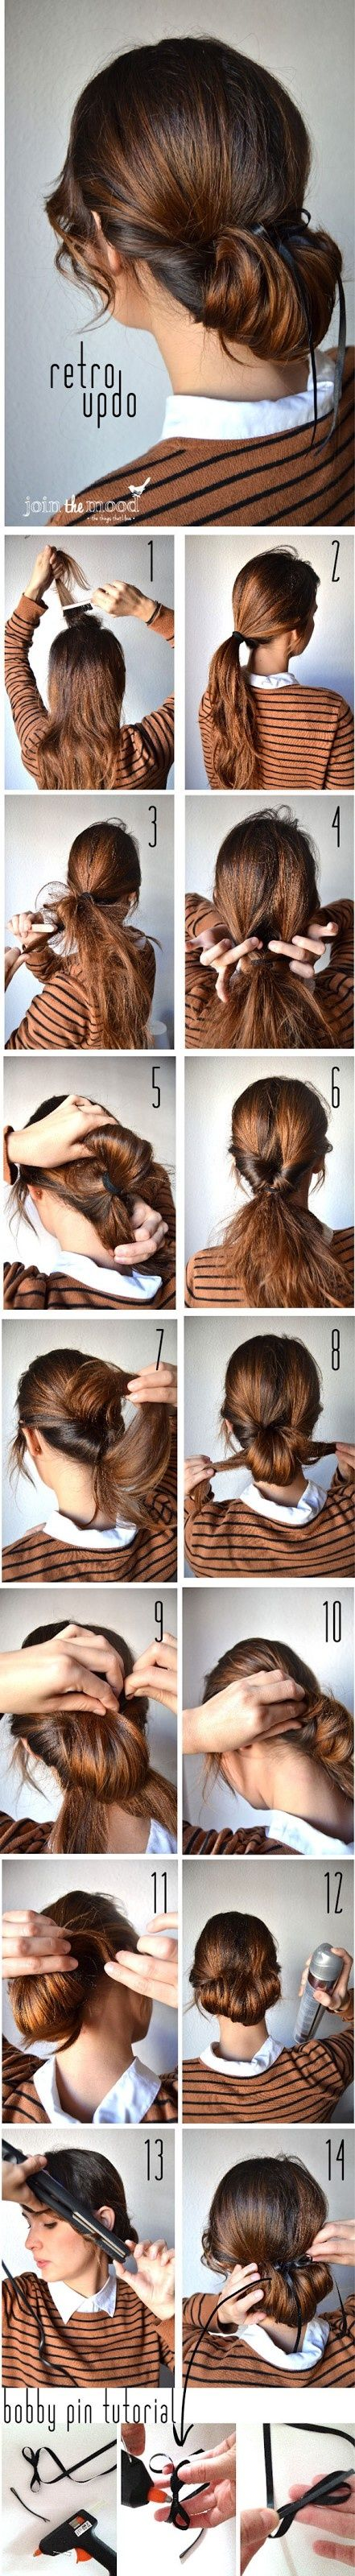 best styling box images on pinterest hairstyle ideas tuto